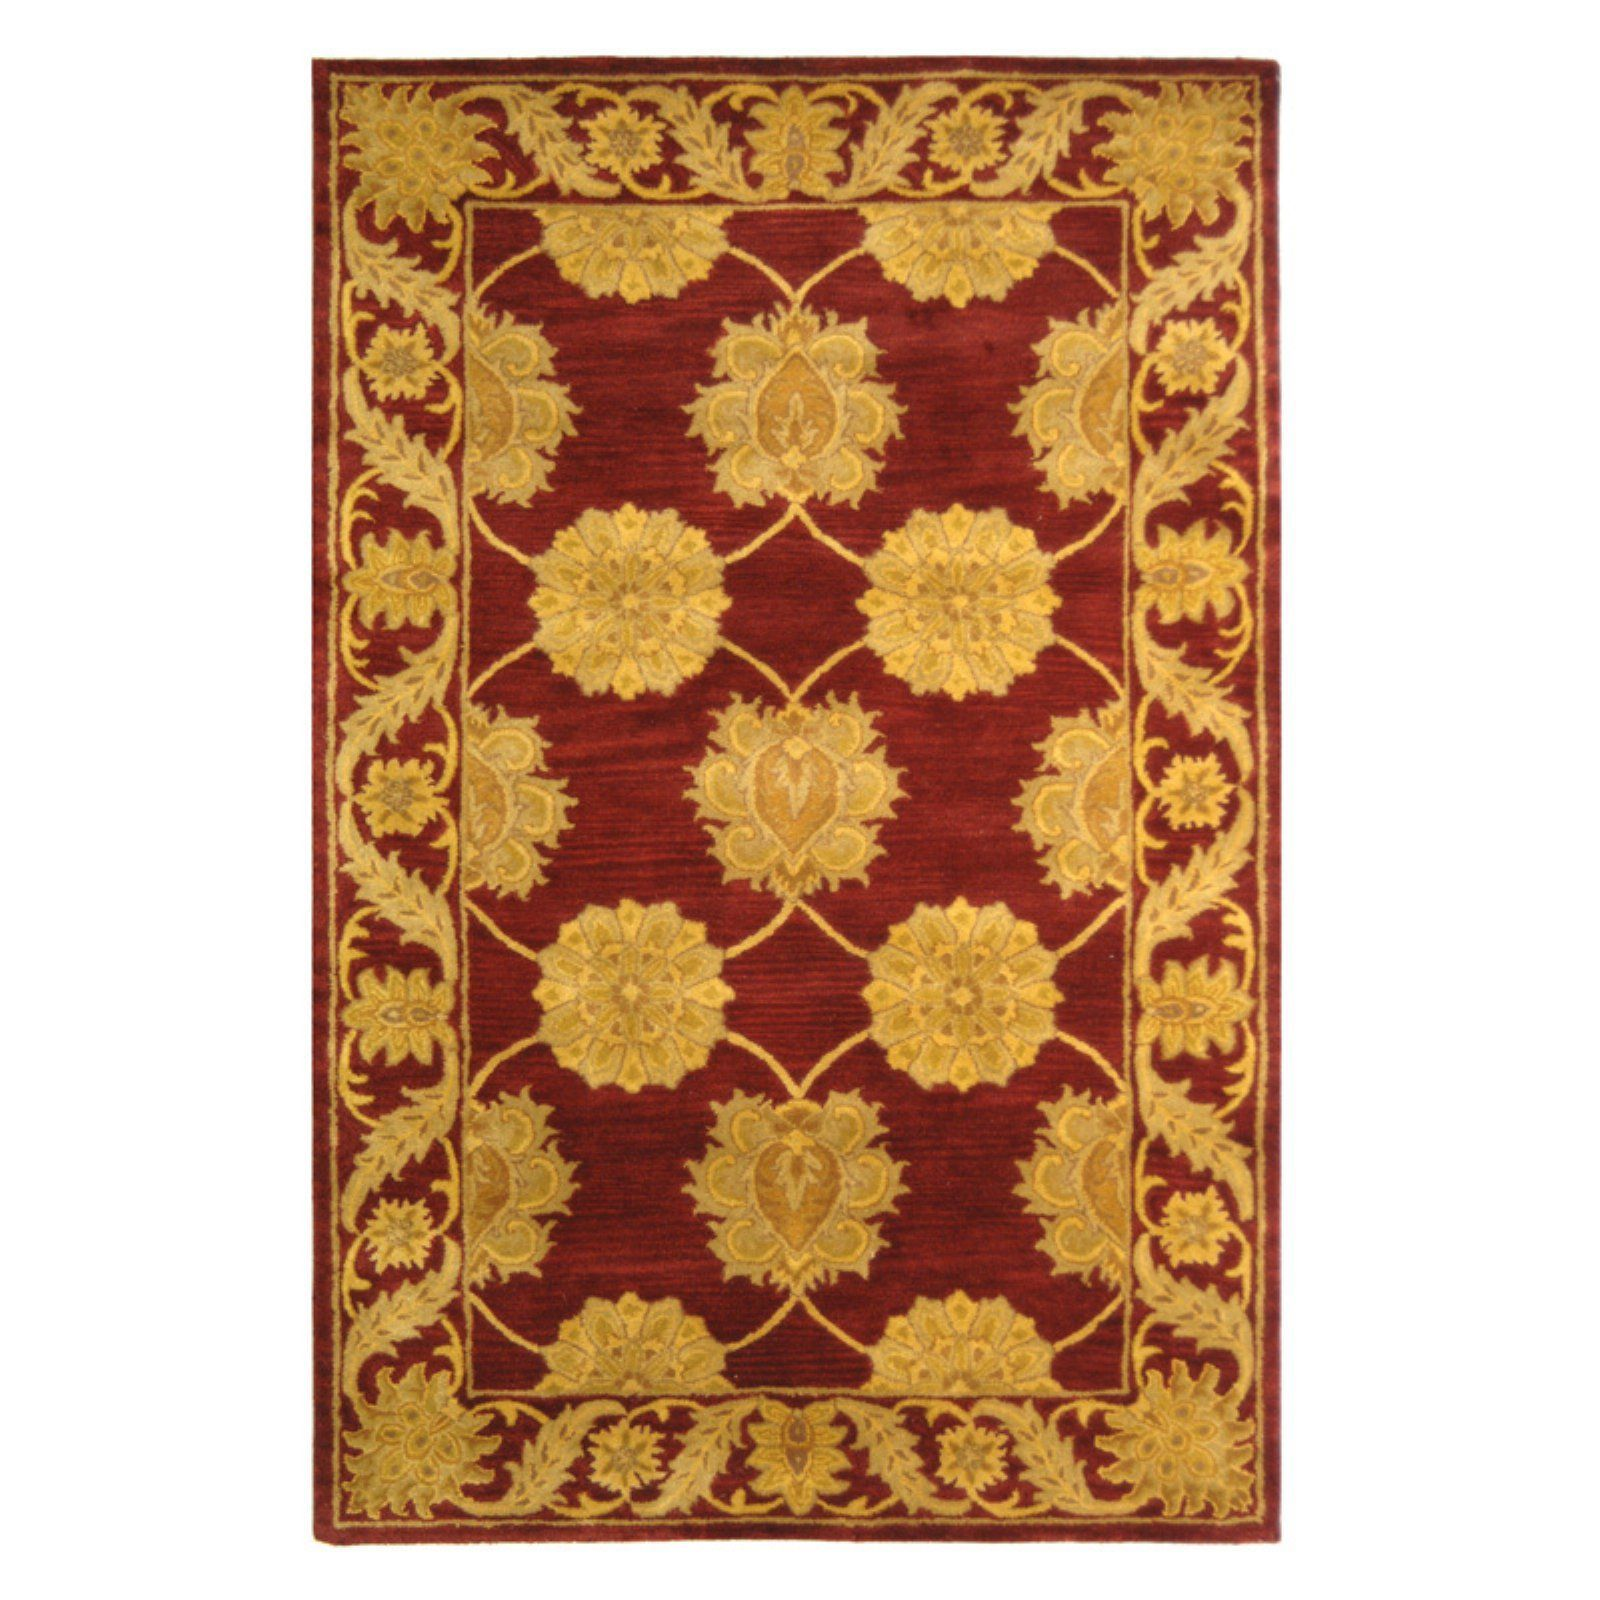 Attractive Design In Maroon Made From Hand Spun Wool Hand Tufted Construction With Cotton Backing Made In Indi In 2020 Area Rugs Traditional Area Rugs Colorful Rugs